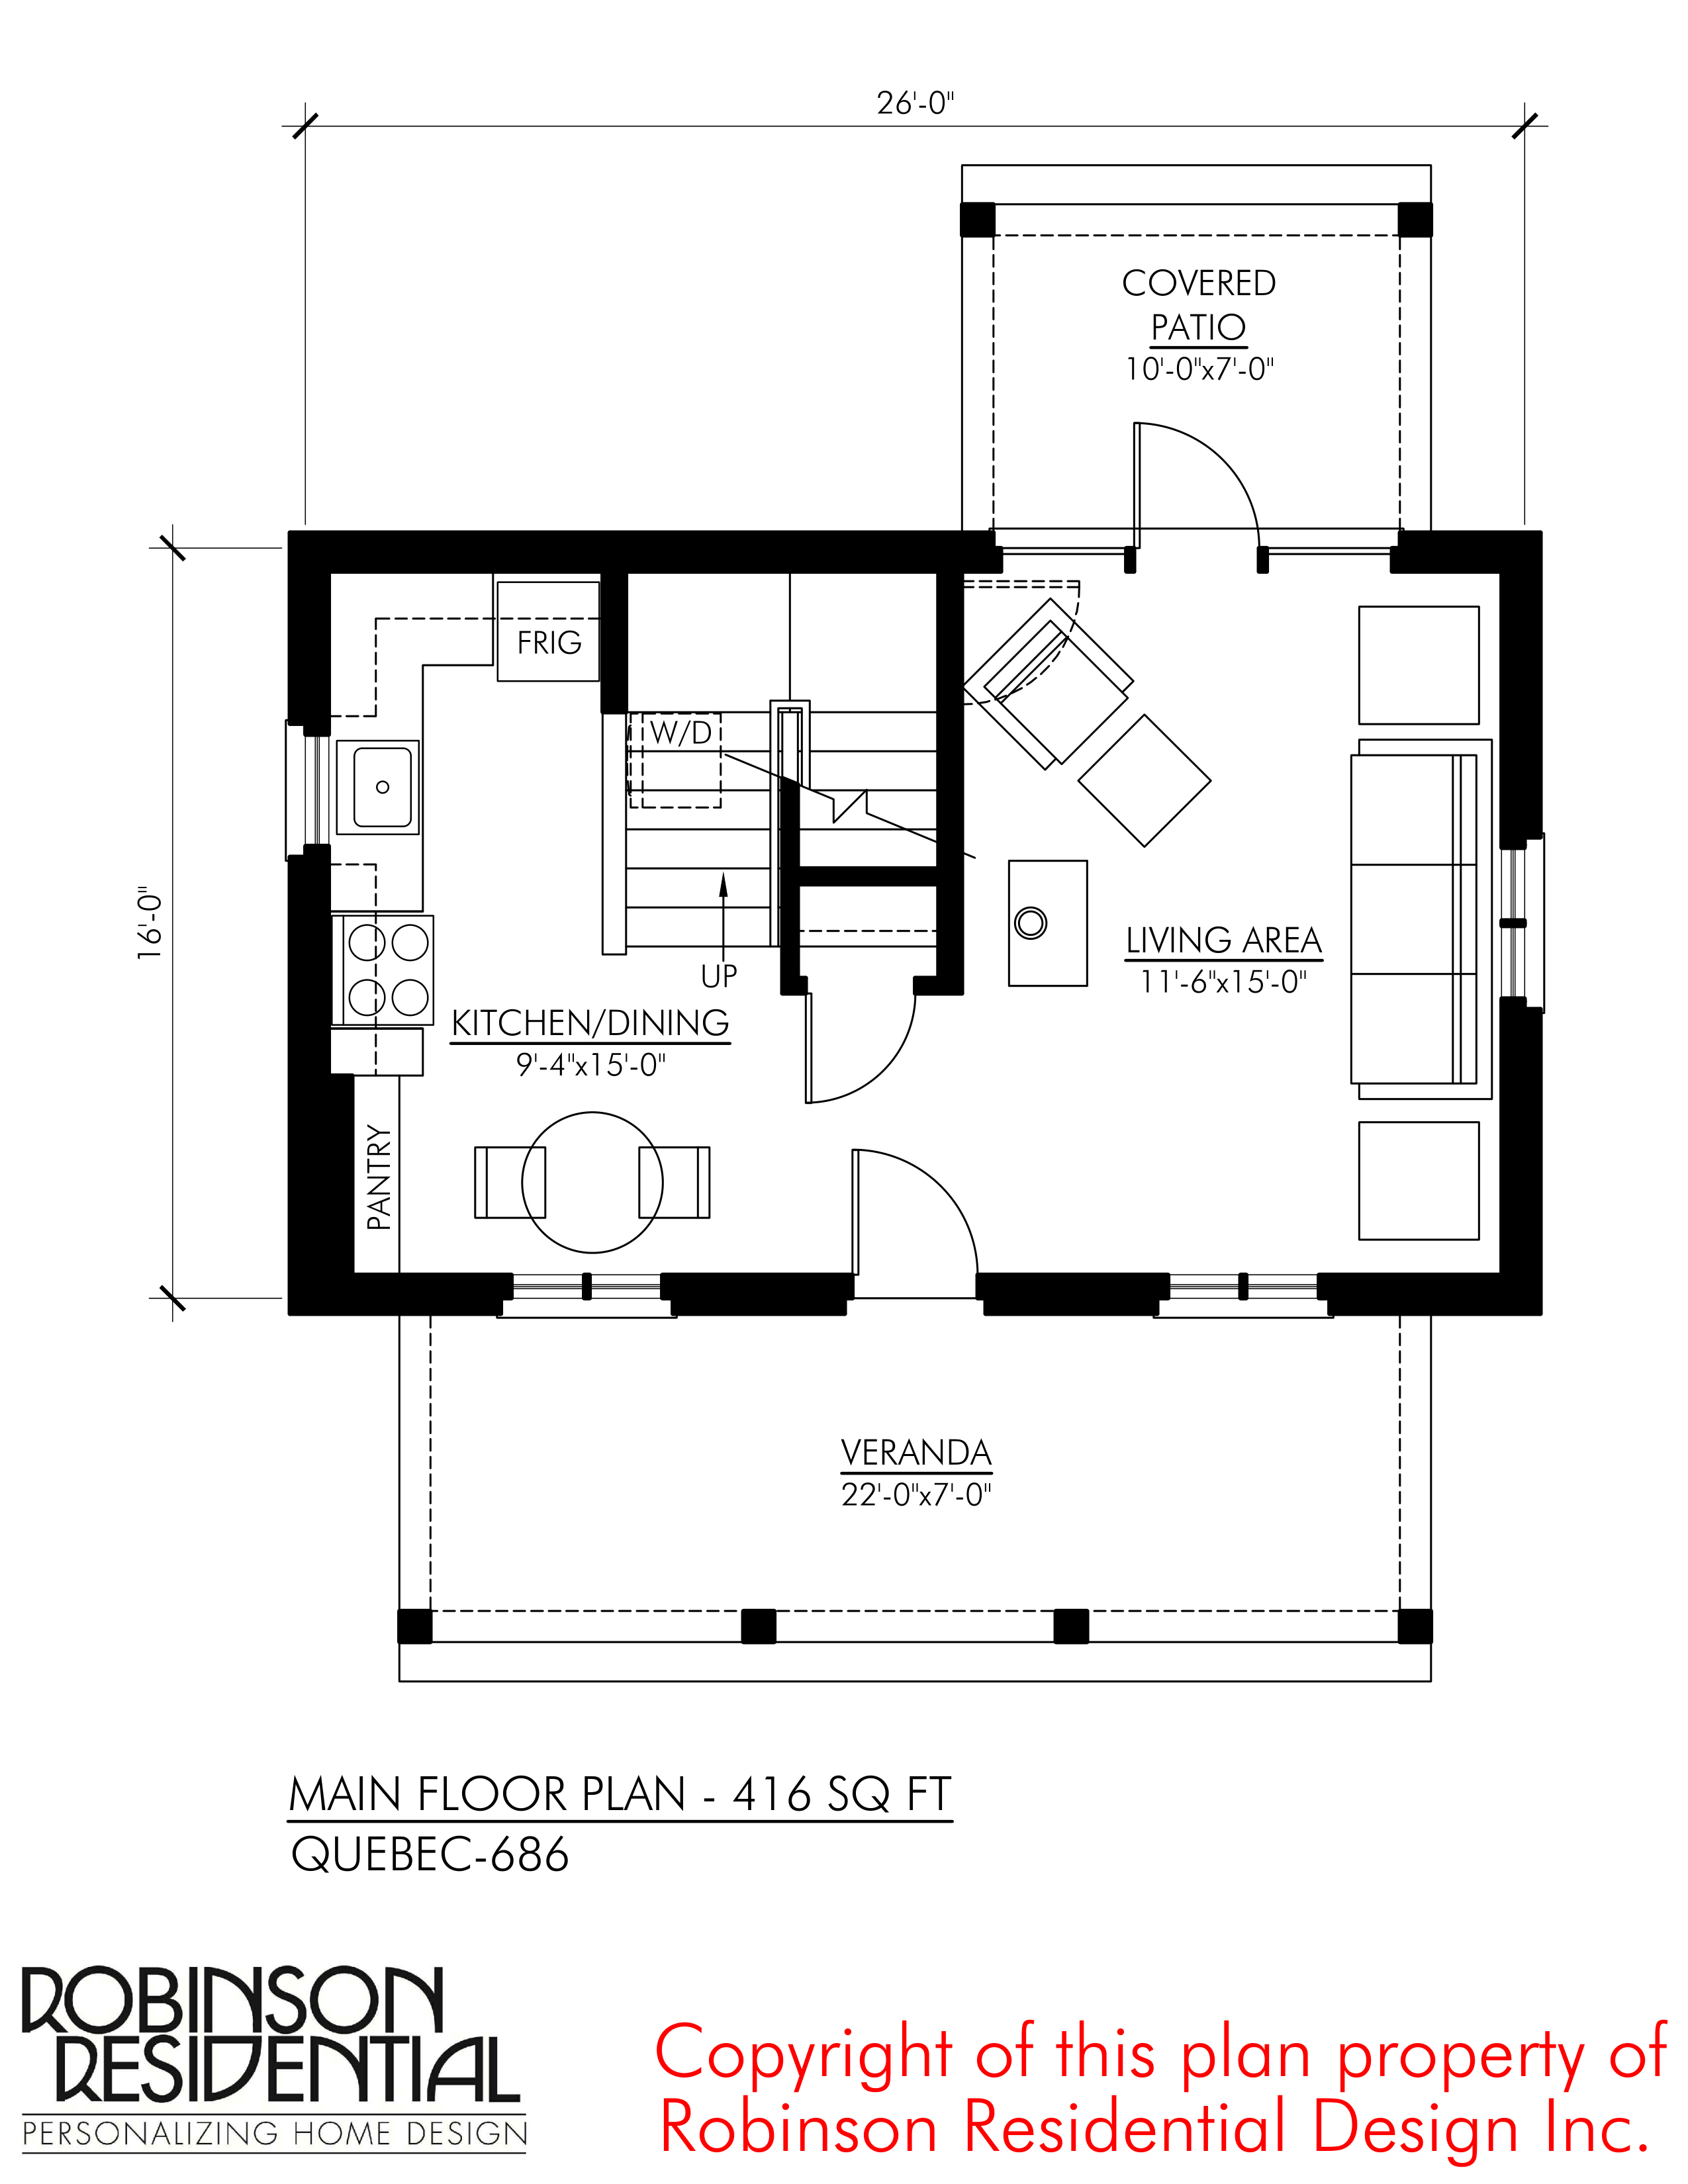 SMALL HOME PLANS QUEBEC 686 01 MAIN FLOOR PLAN - Download Small House Design With Floor Plan  Pictures